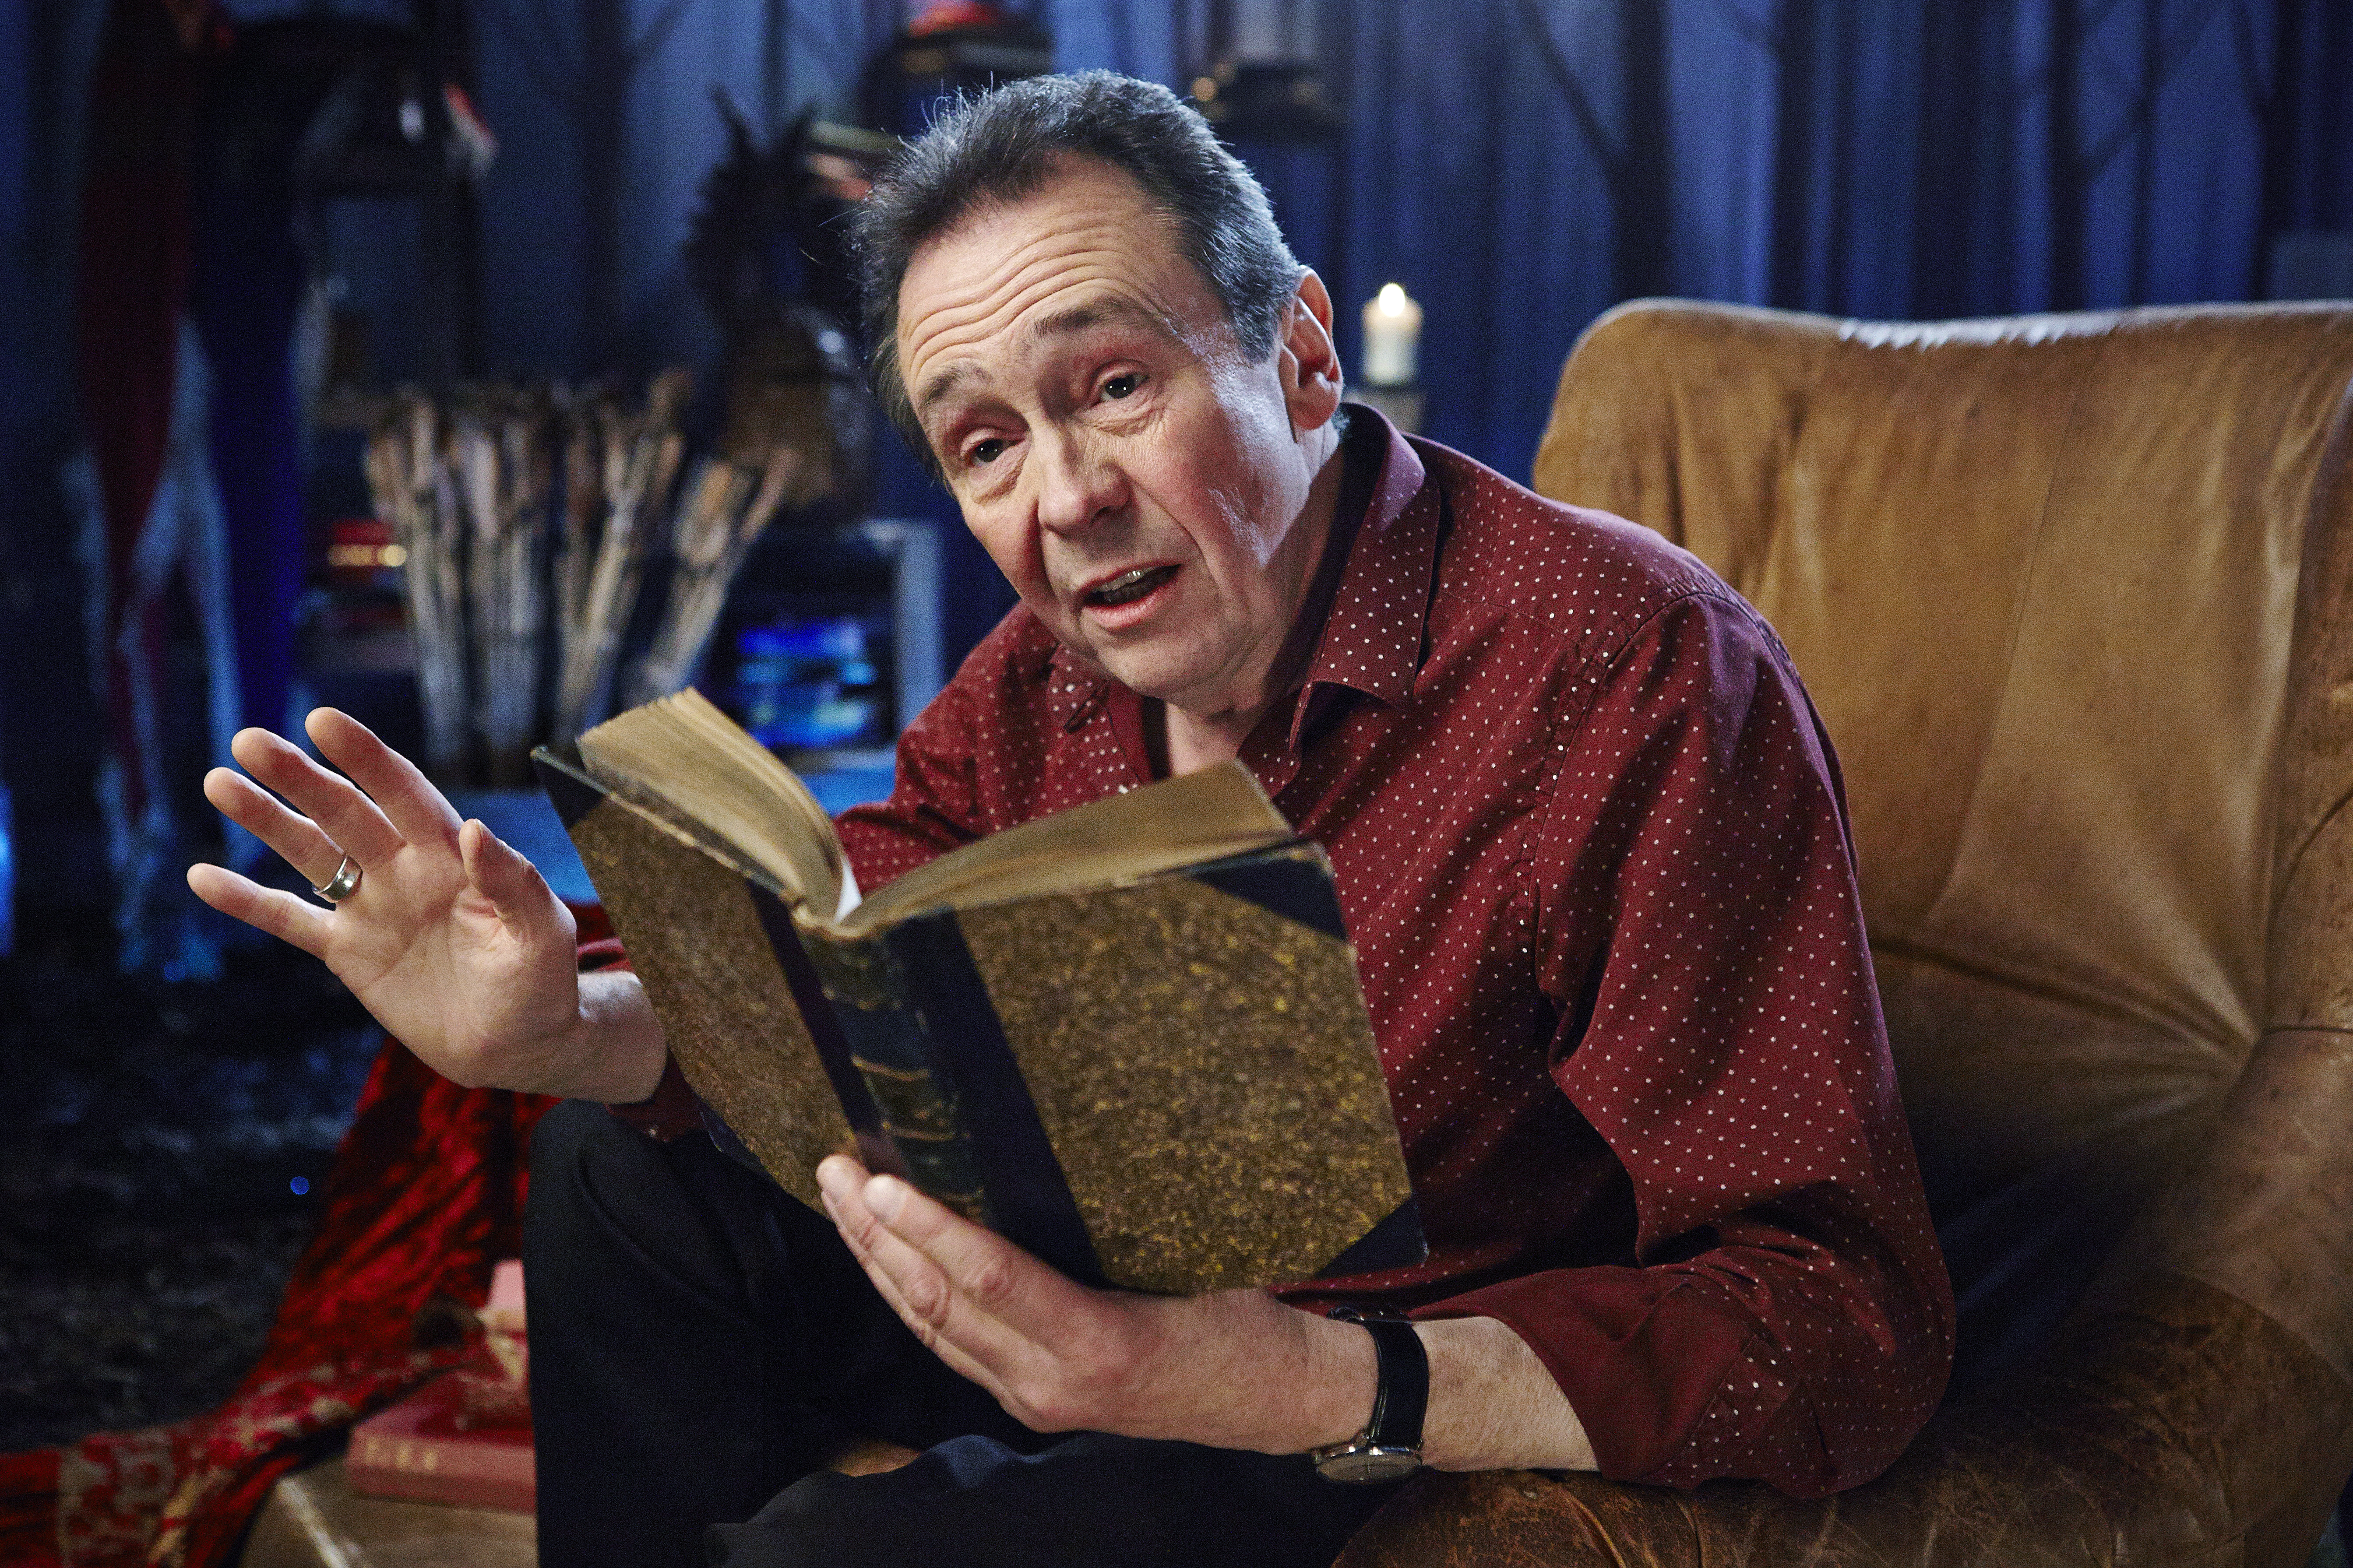 Crackanory – Series 3 – Episode 01 – PaulWhitehouse